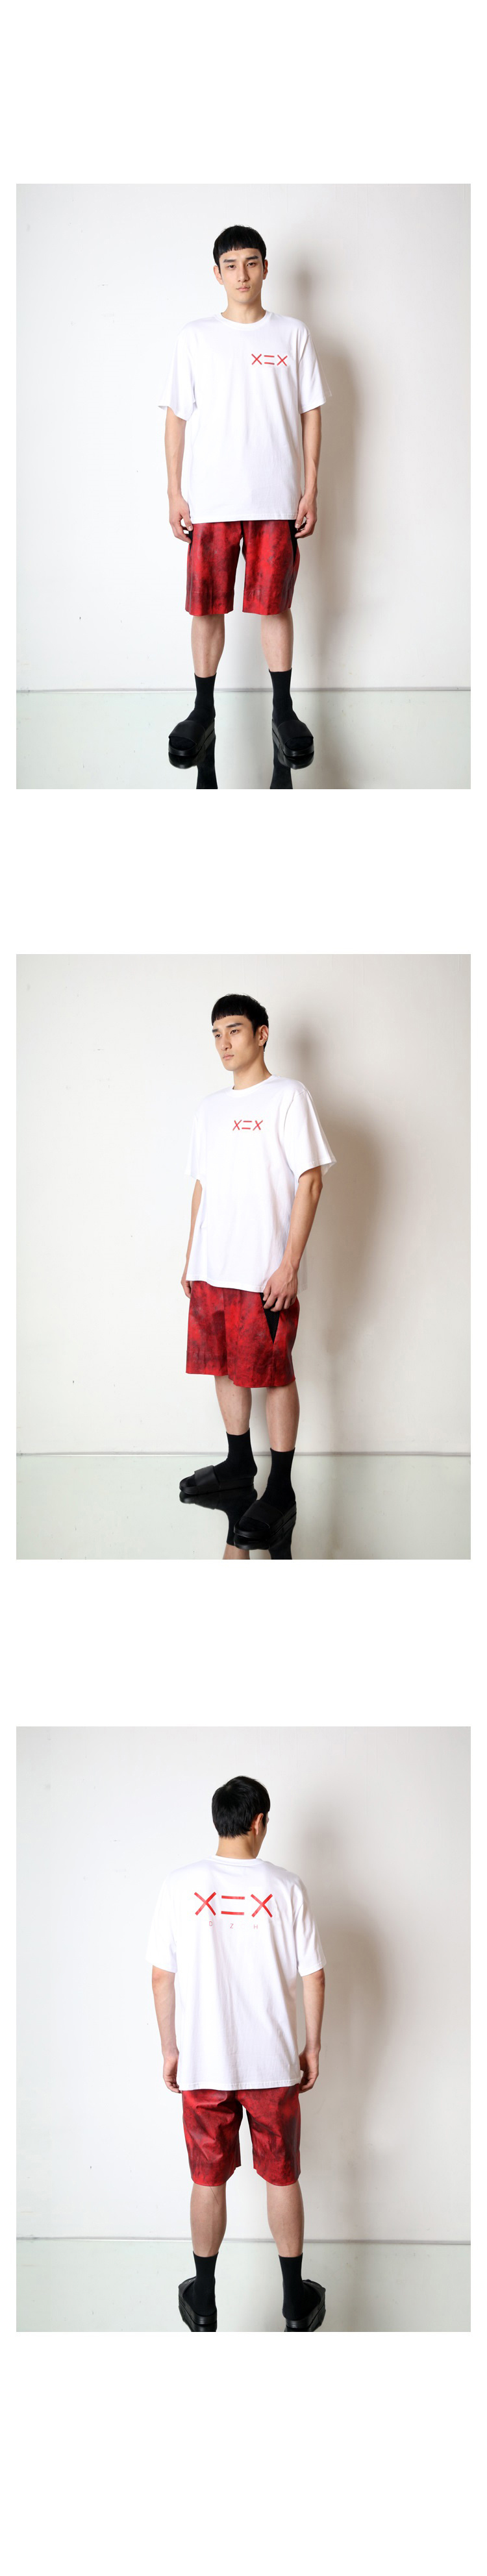 도조(DOZOH) WHITE DZH RED LOGO T-SHIRTS